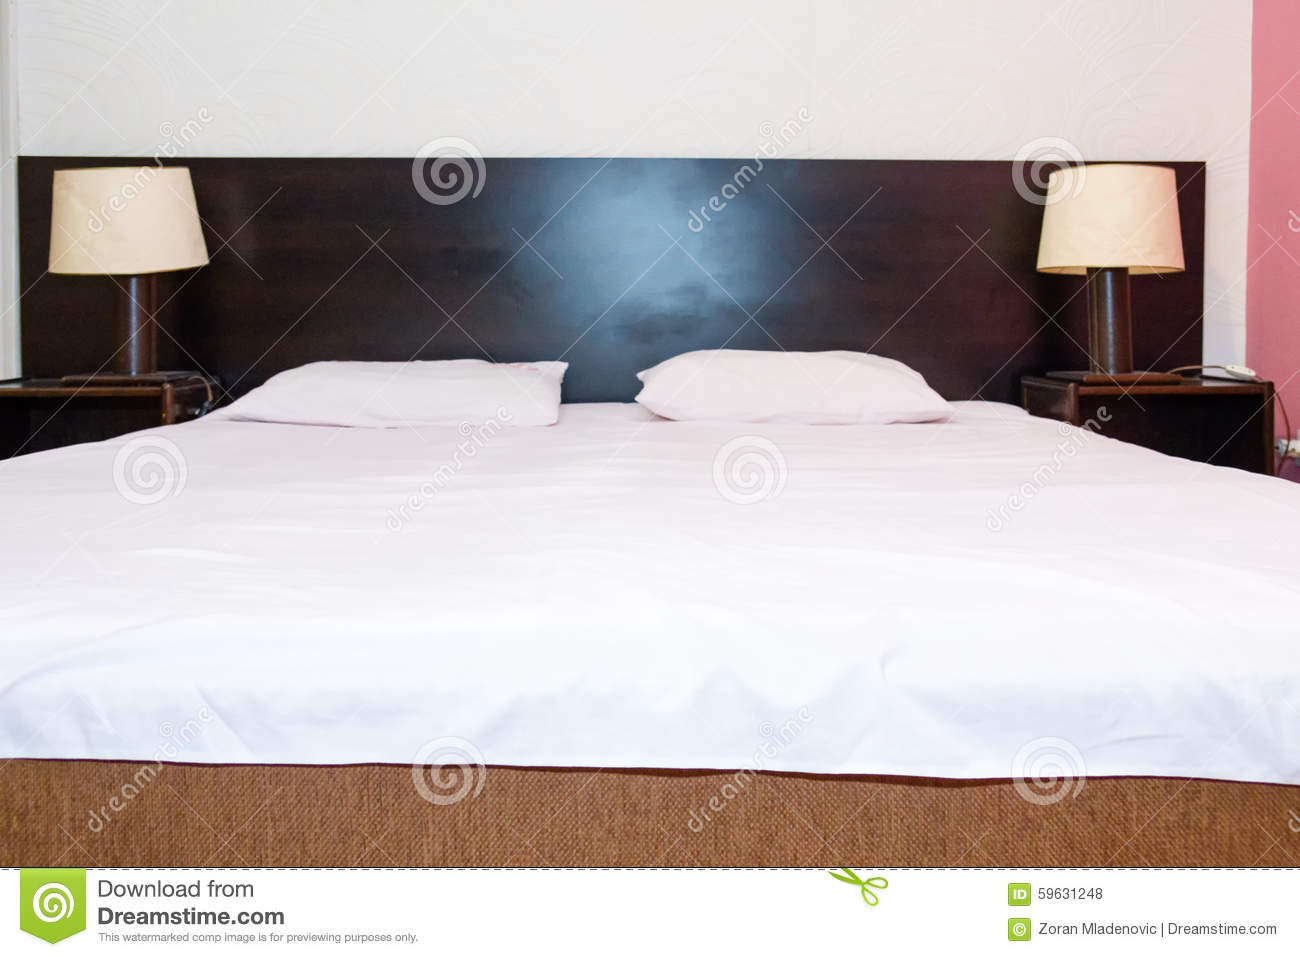 A white bed with 2 pillows in hotel room stock image 85064809 - Beautiful snooze bedroom suites packing comfort in style ...